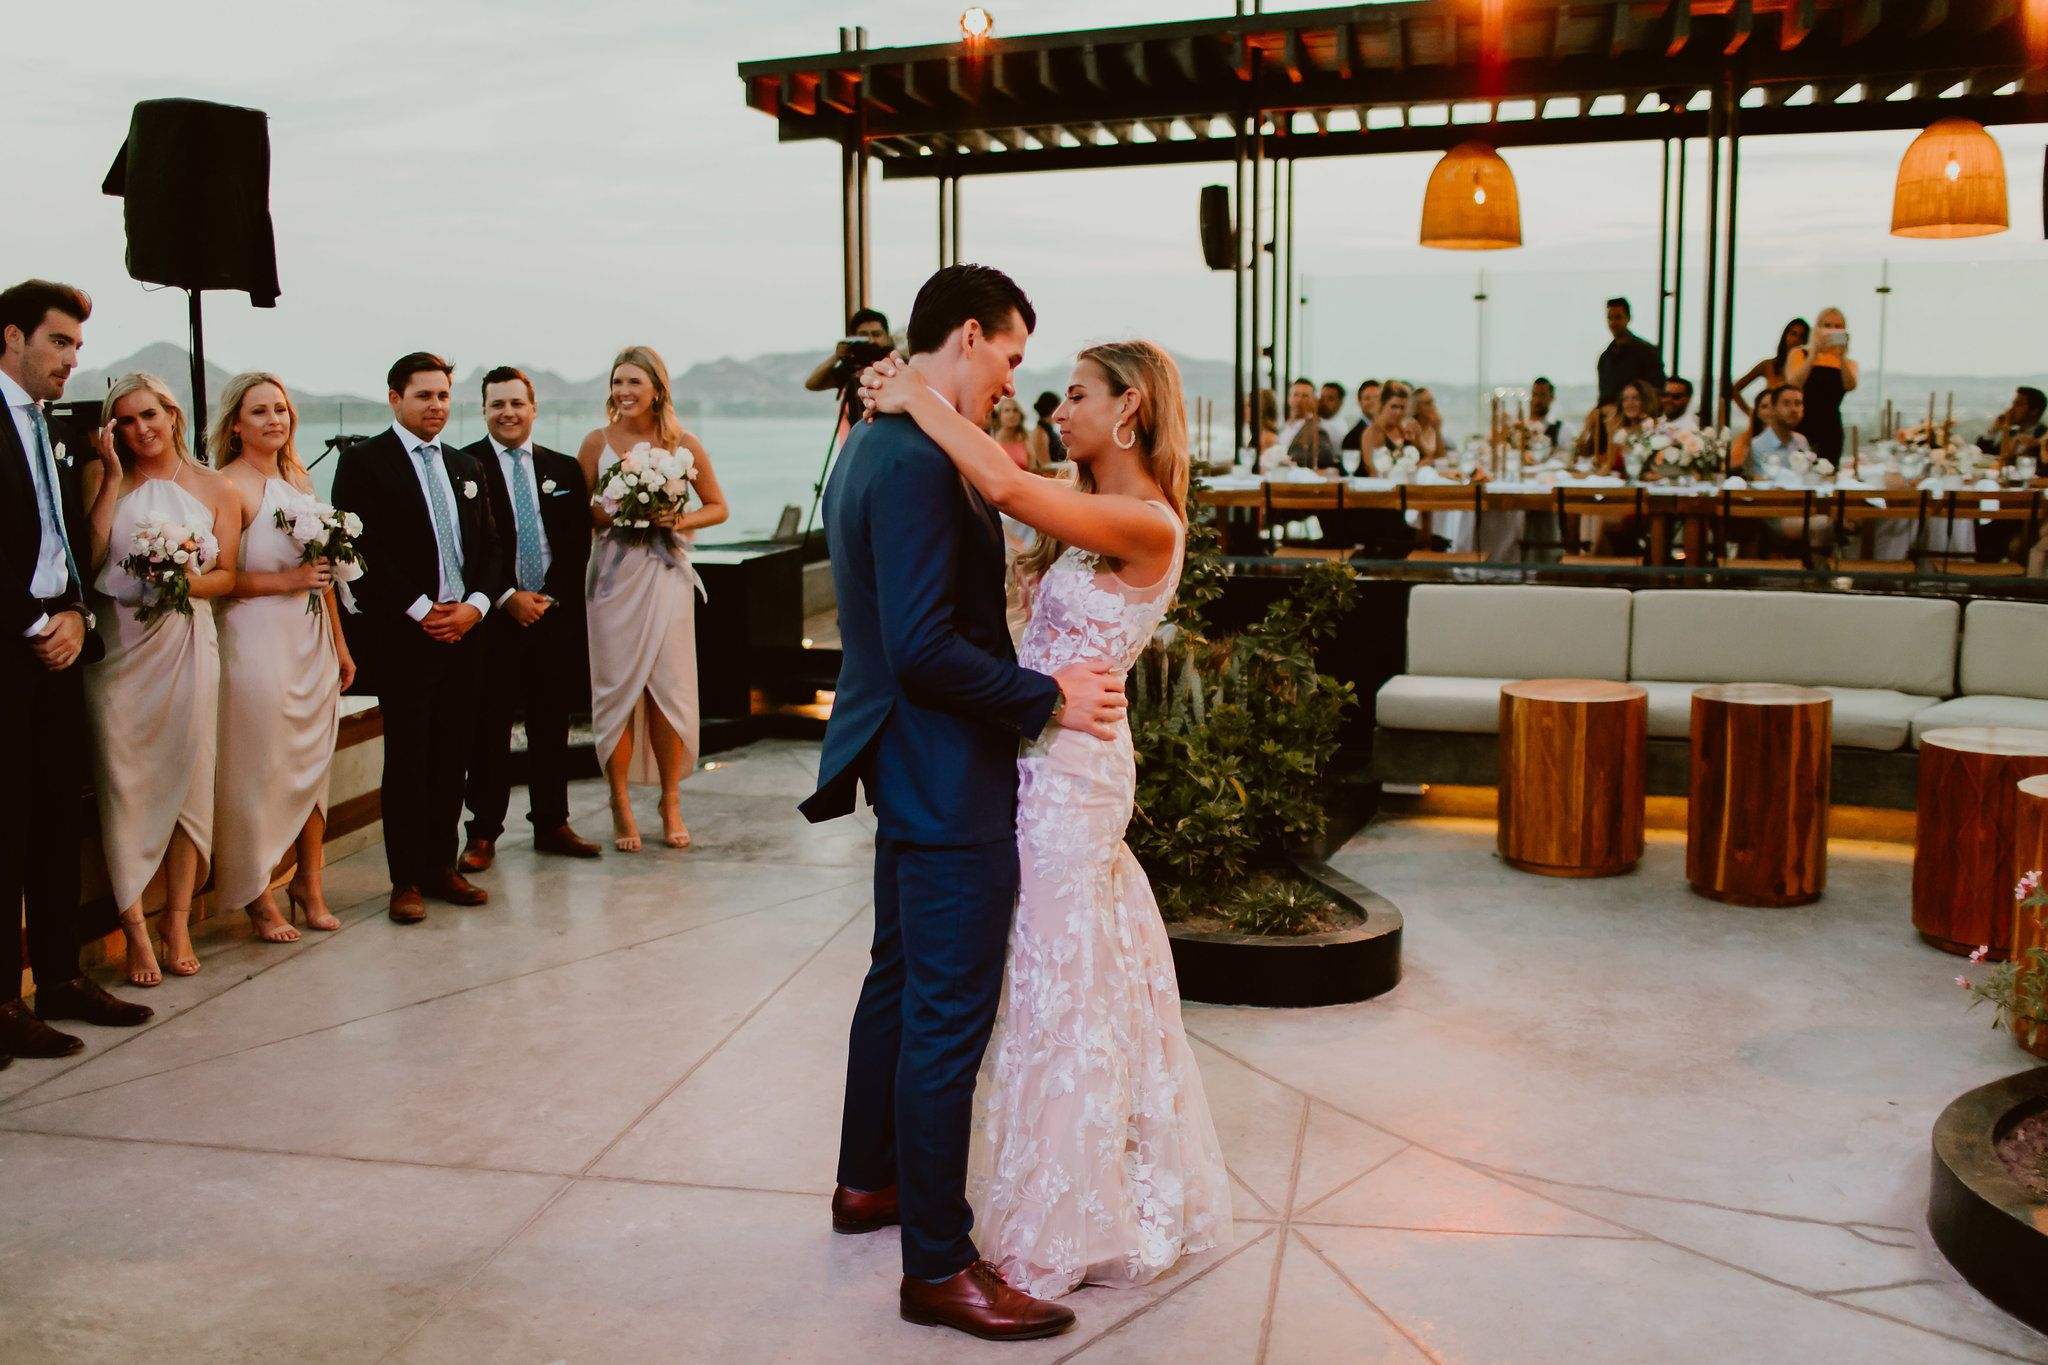 Bride and groom having their first dance at the rooftop at The Cape in Los Cabos, Mexico. They had all of their close family and friends watching as they has their first dance as husband and wife.